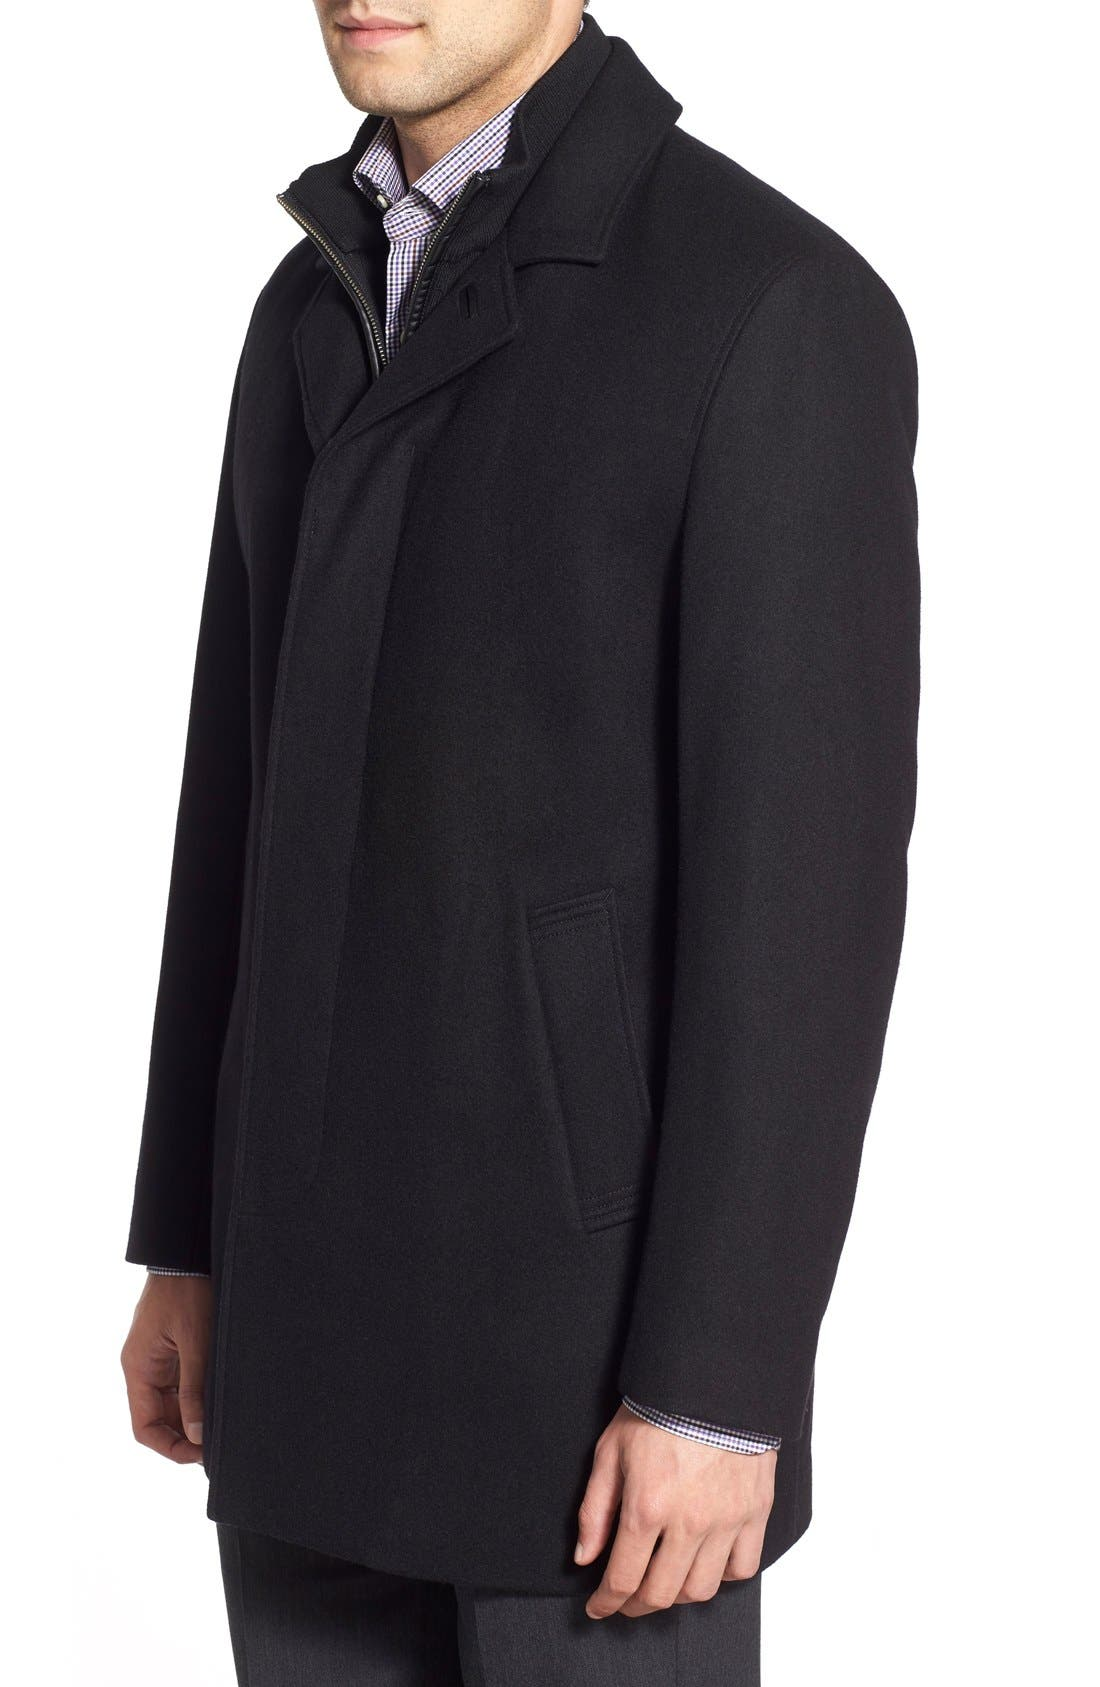 Wool Blend Topcoat with Inset Knit Bib,                             Alternate thumbnail 3, color,                             BLACK